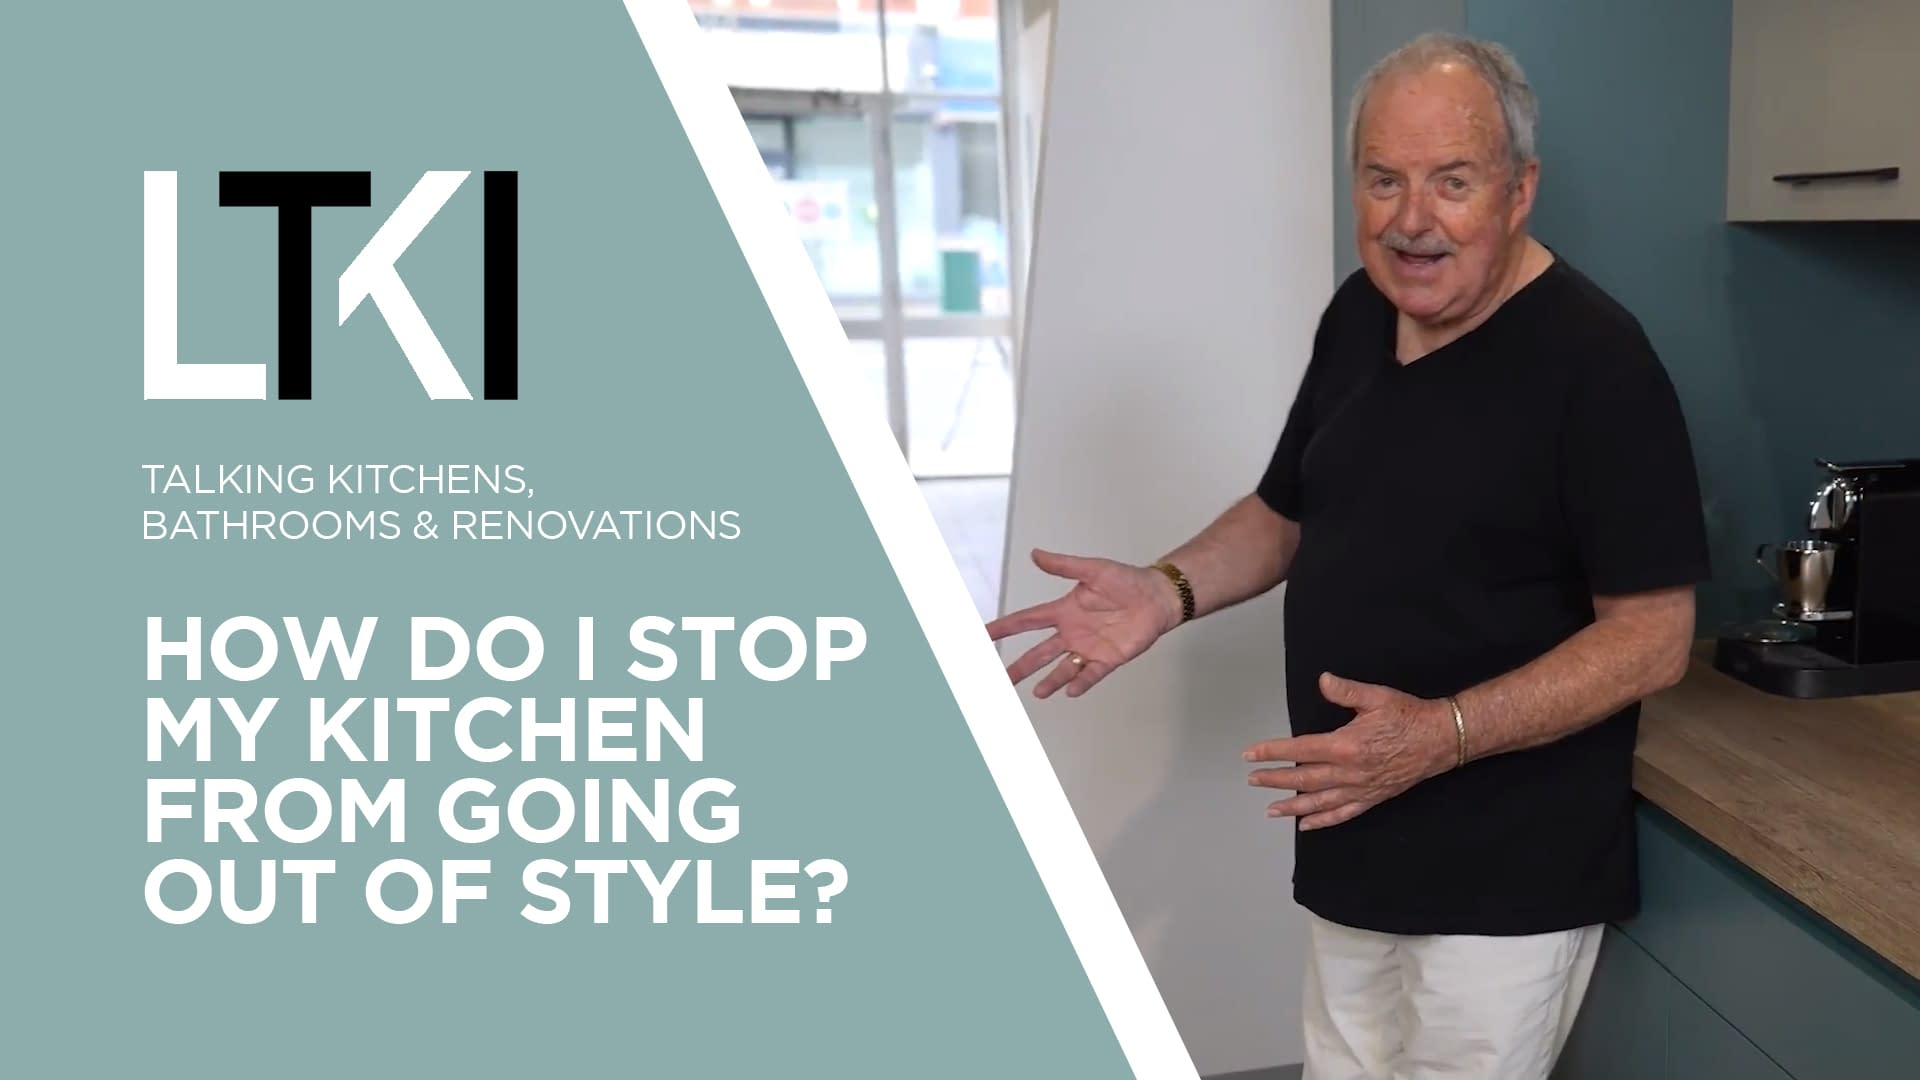 Talking Kitchens, Bathrooms & Renovations: How Do I Stop My Kitchen From Going Out Of Style?